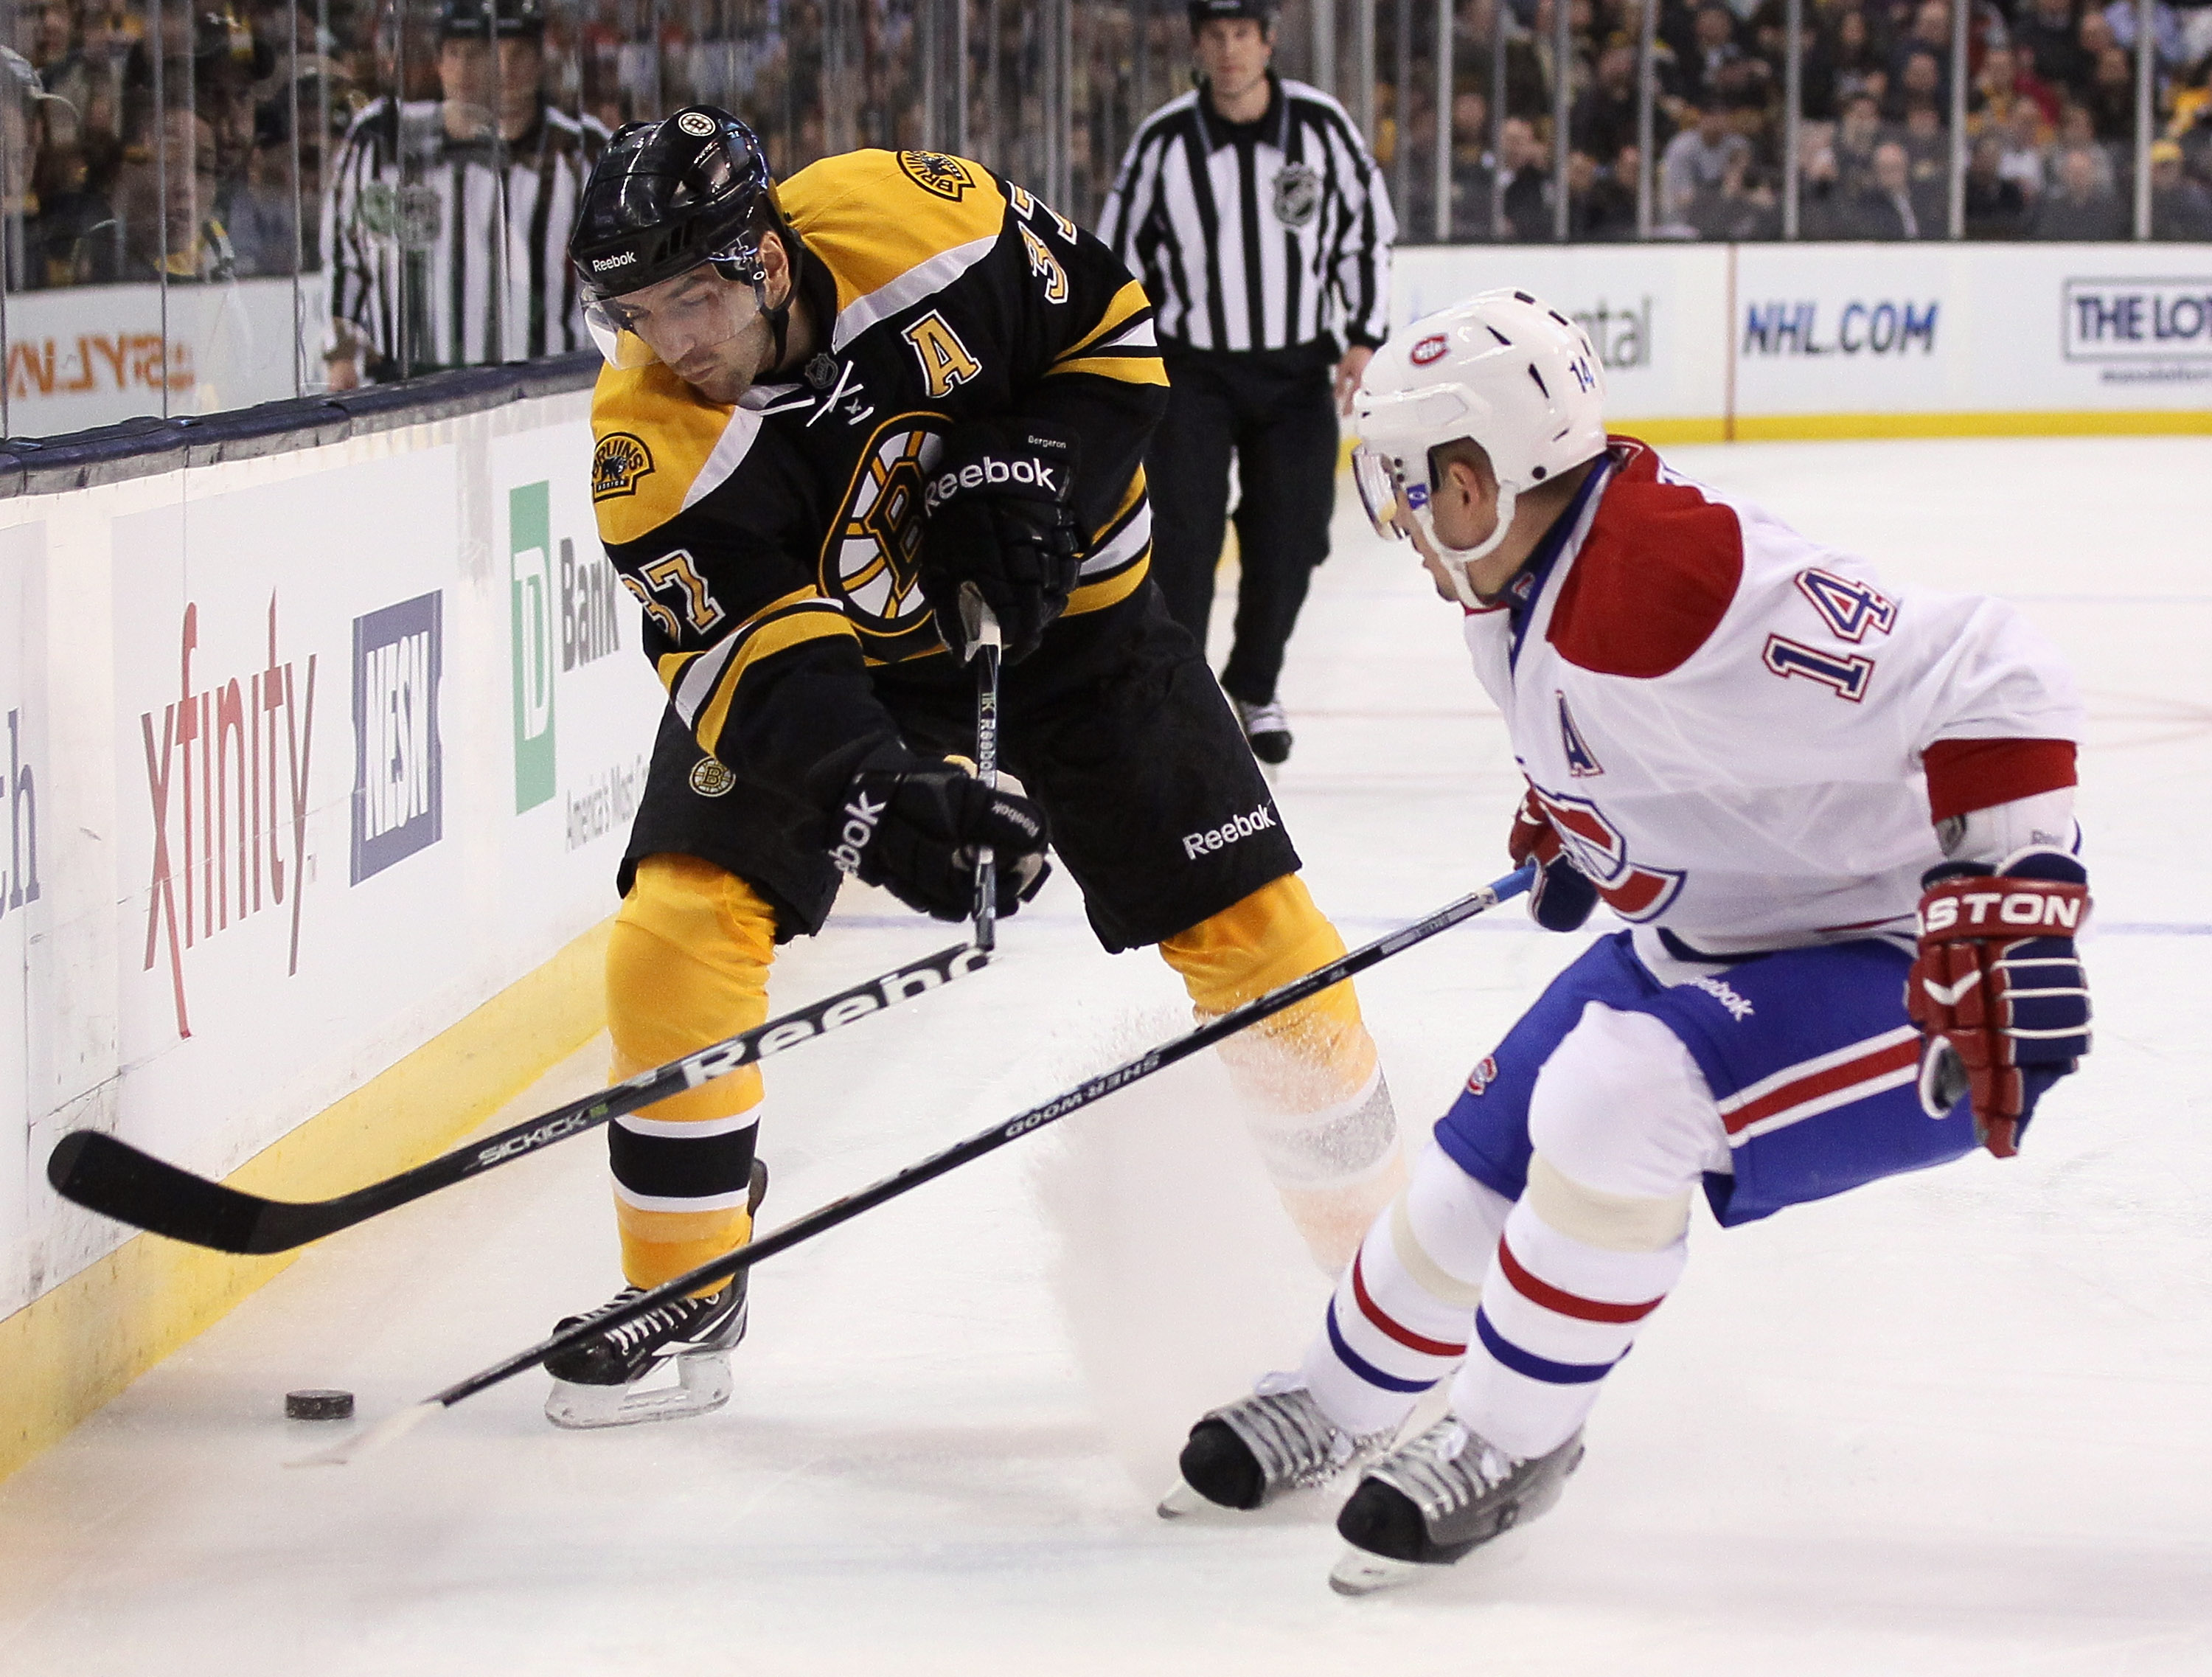 BOSTON, MA - MARCH 24:  Patrice Bergeron #37 of the Boston Bruins breaks his stick as he takes a shot while Tomas Plekanec #14 of the Montreal Canadiens defends on March 24, 2011 at the TD Garden in Boston, Massachusetts.  (Photo by Elsa/Getty Images)